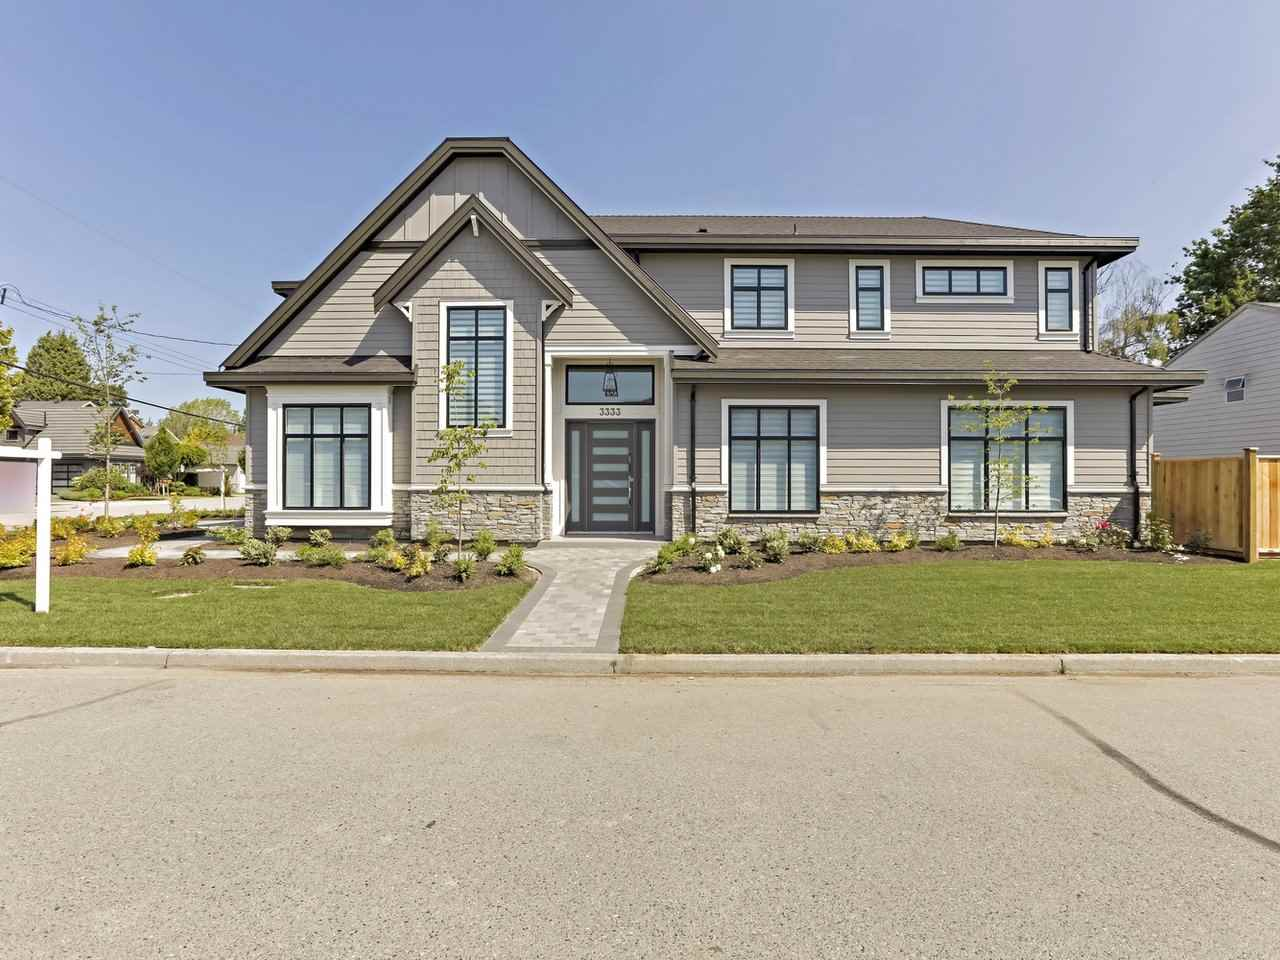 3333 MORESBY DRIVE, 5 bed, 4 bath, at $2,288,000